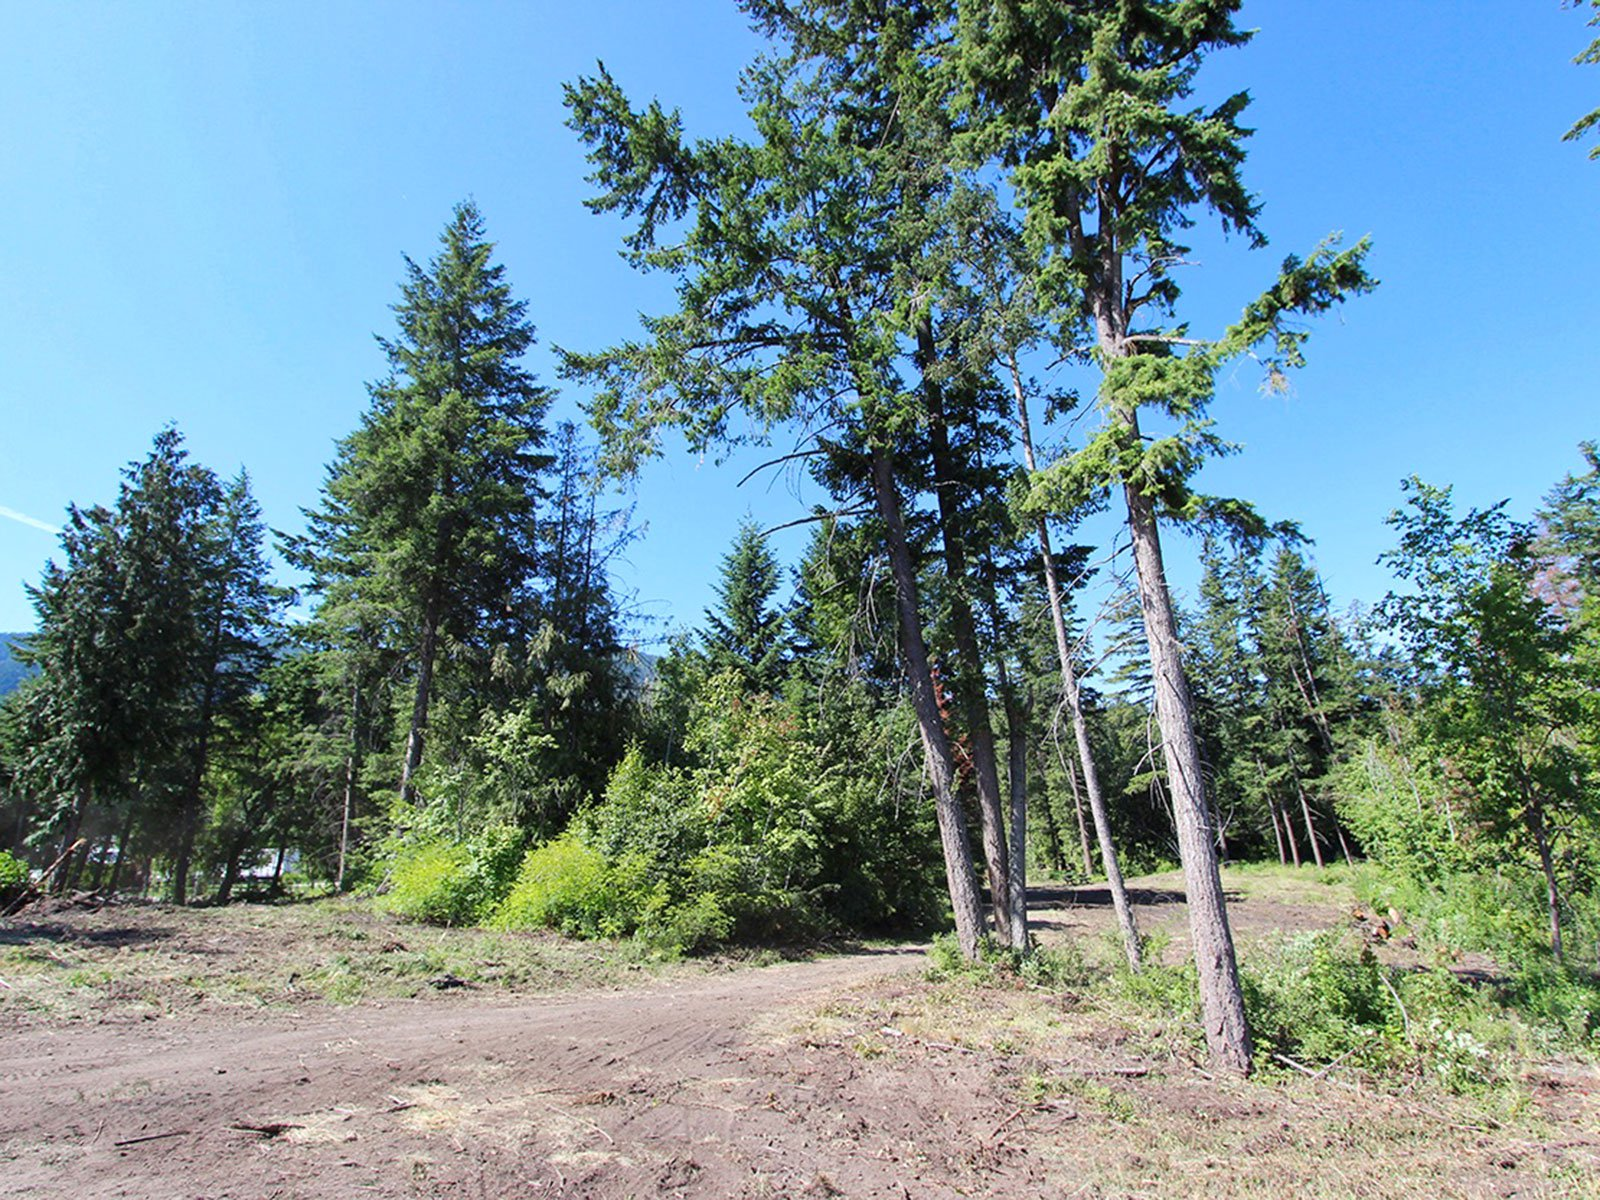 Photo 12: Photos: 663 Waverly Park Frontage Road in Sorrento, BC: Land Only for sale (Sorrento)  : MLS®# 10186241